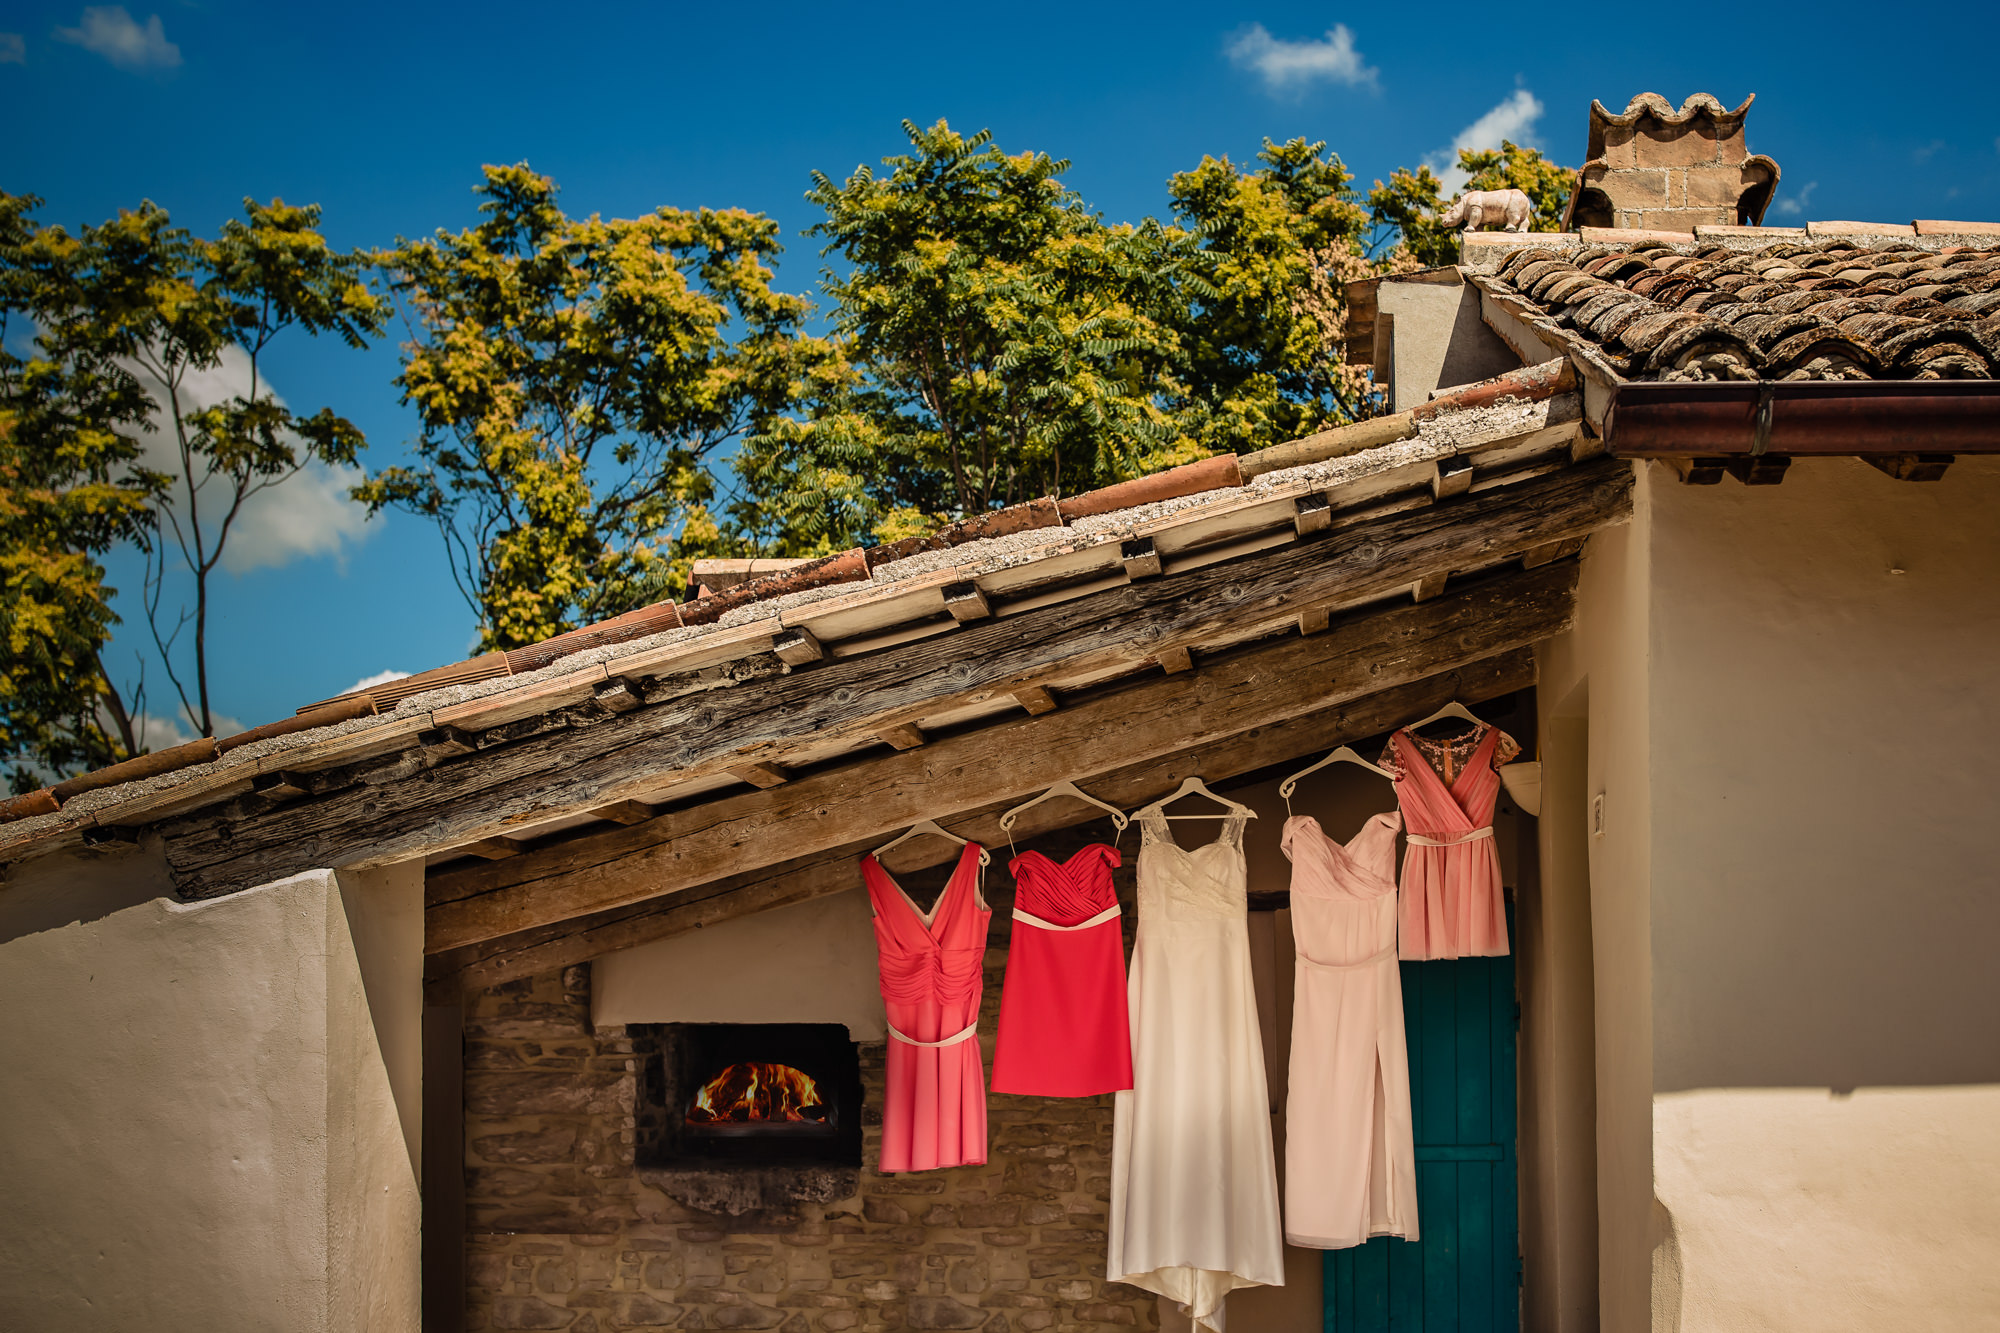 Creative photo of bridesmaids dresses hanging under roof with window framing bride getting ready by Eppel Fotographie